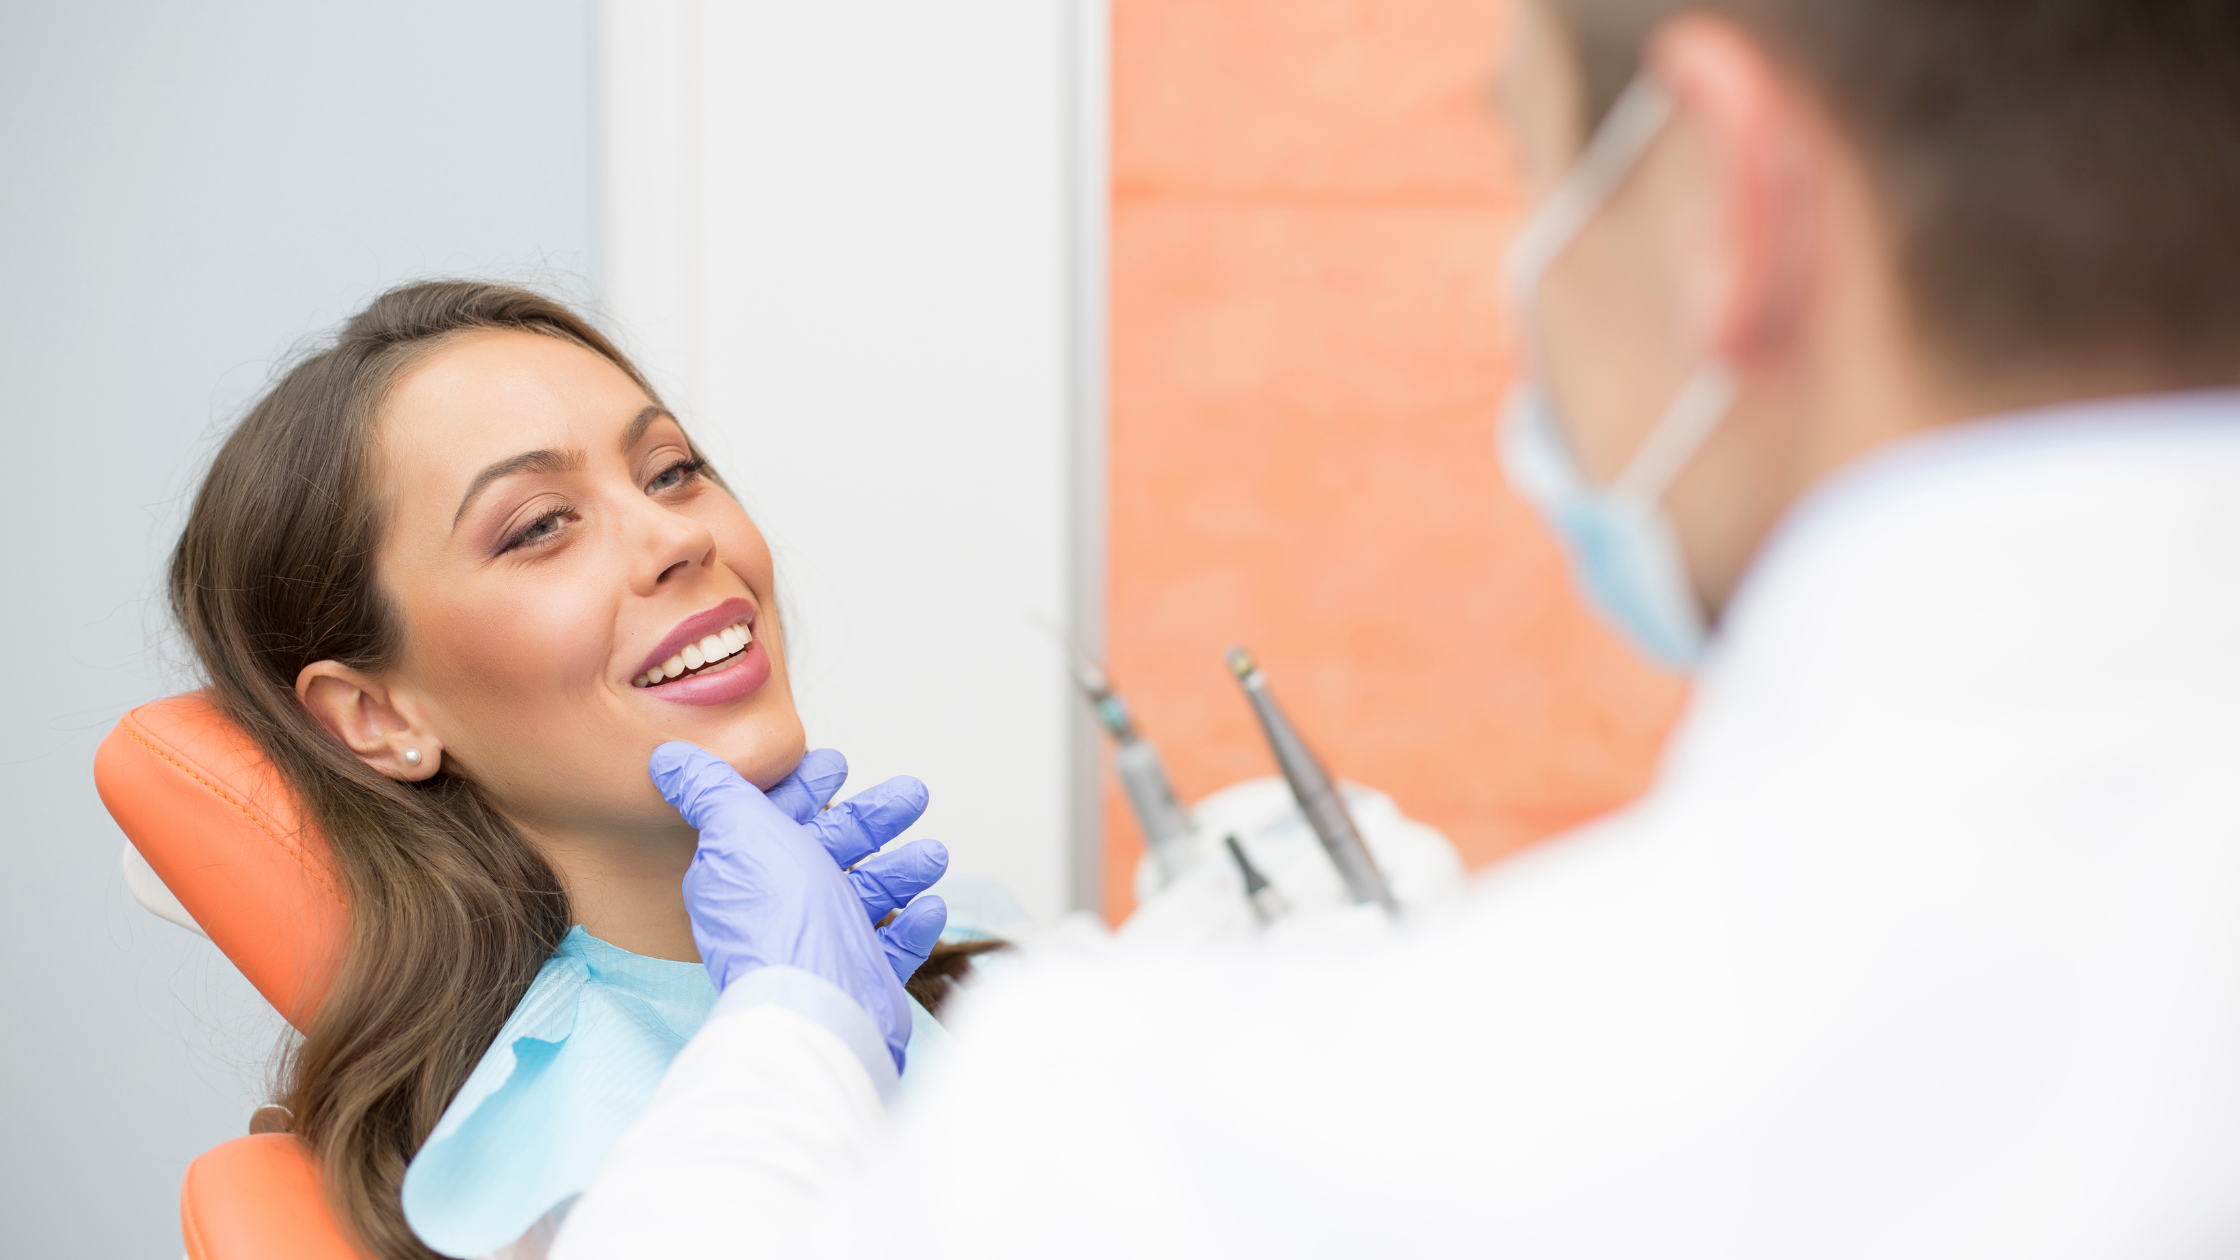 A patient is happy for getting good dental service